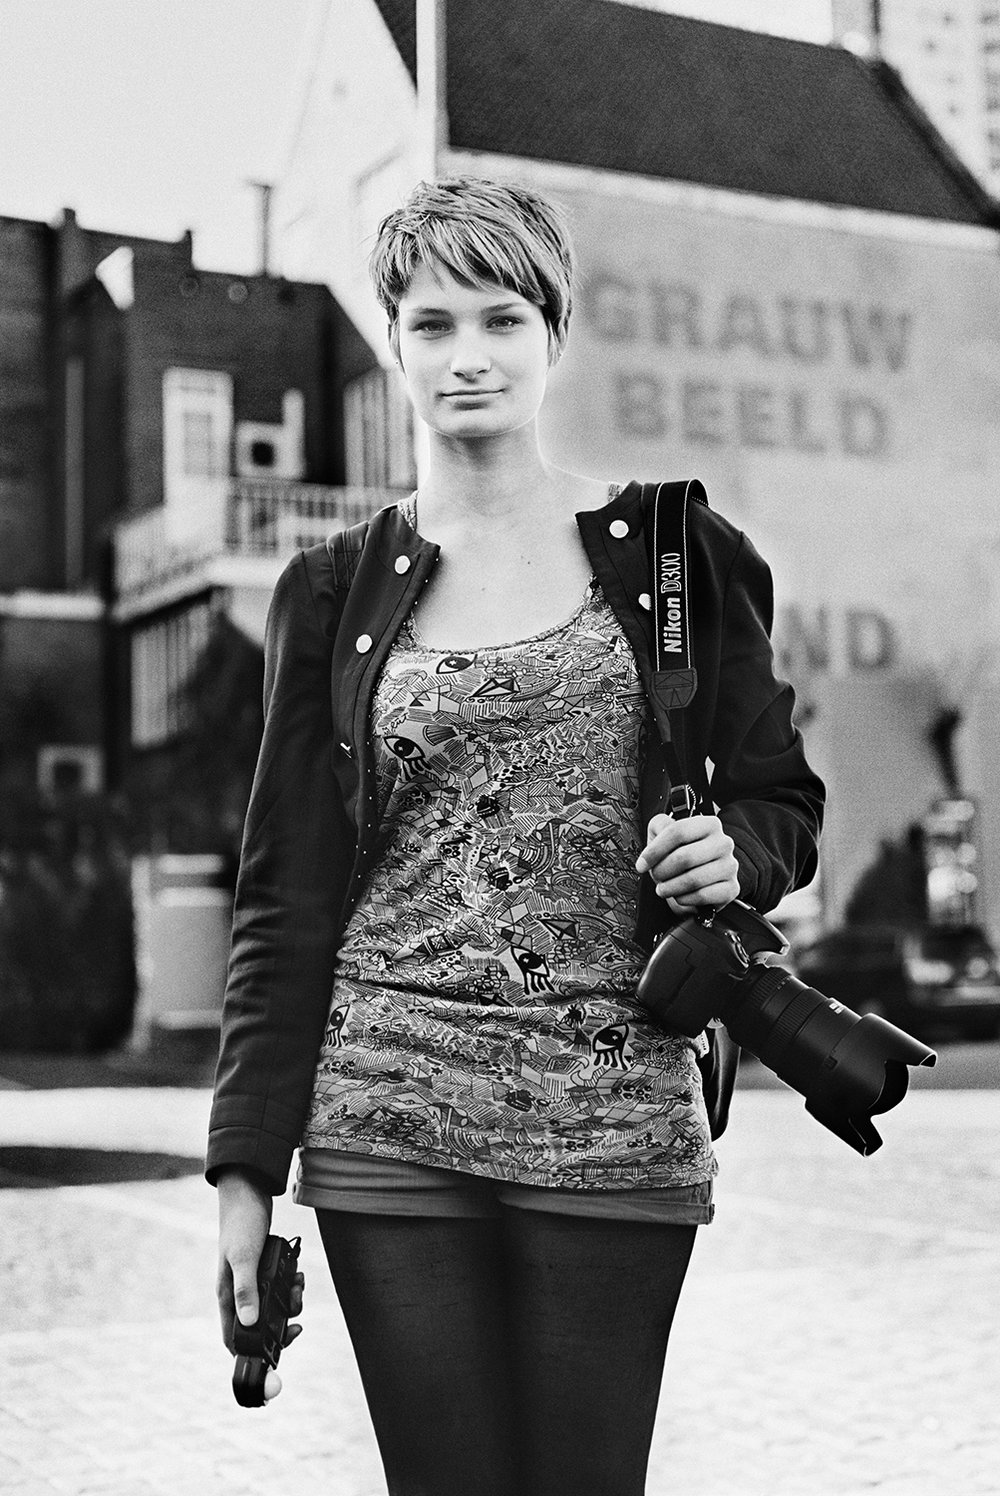 Iris // Student photography On her very first workday as my intern, she borrowed my bike to get to the train station faster. It took her about an hour to get there. The fact that I live a maximum of 5 minutes away from that station gave her a cute clumsiness. She still rocked that internship though. I just made sure to go easy on the navigation tasks. 9/10